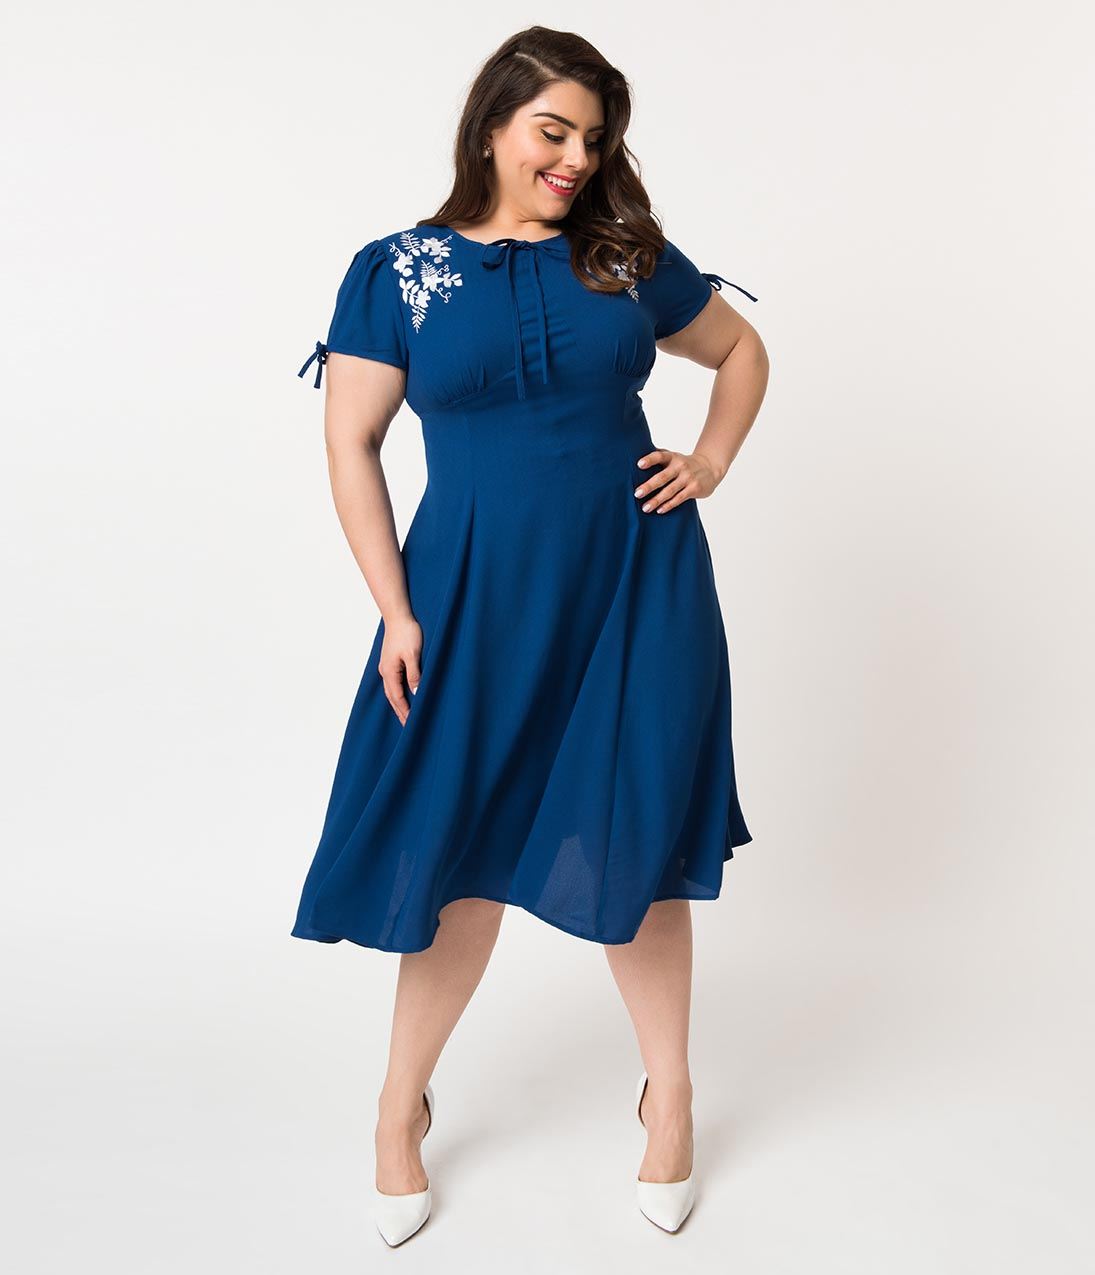 1940s Plus Size Fashion: Style Advice from 1940s to Today Plus Size 1940S Style Royal Blue Crepe  White Embroidered Floral Ava Swing Dress $78.00 AT vintagedancer.com